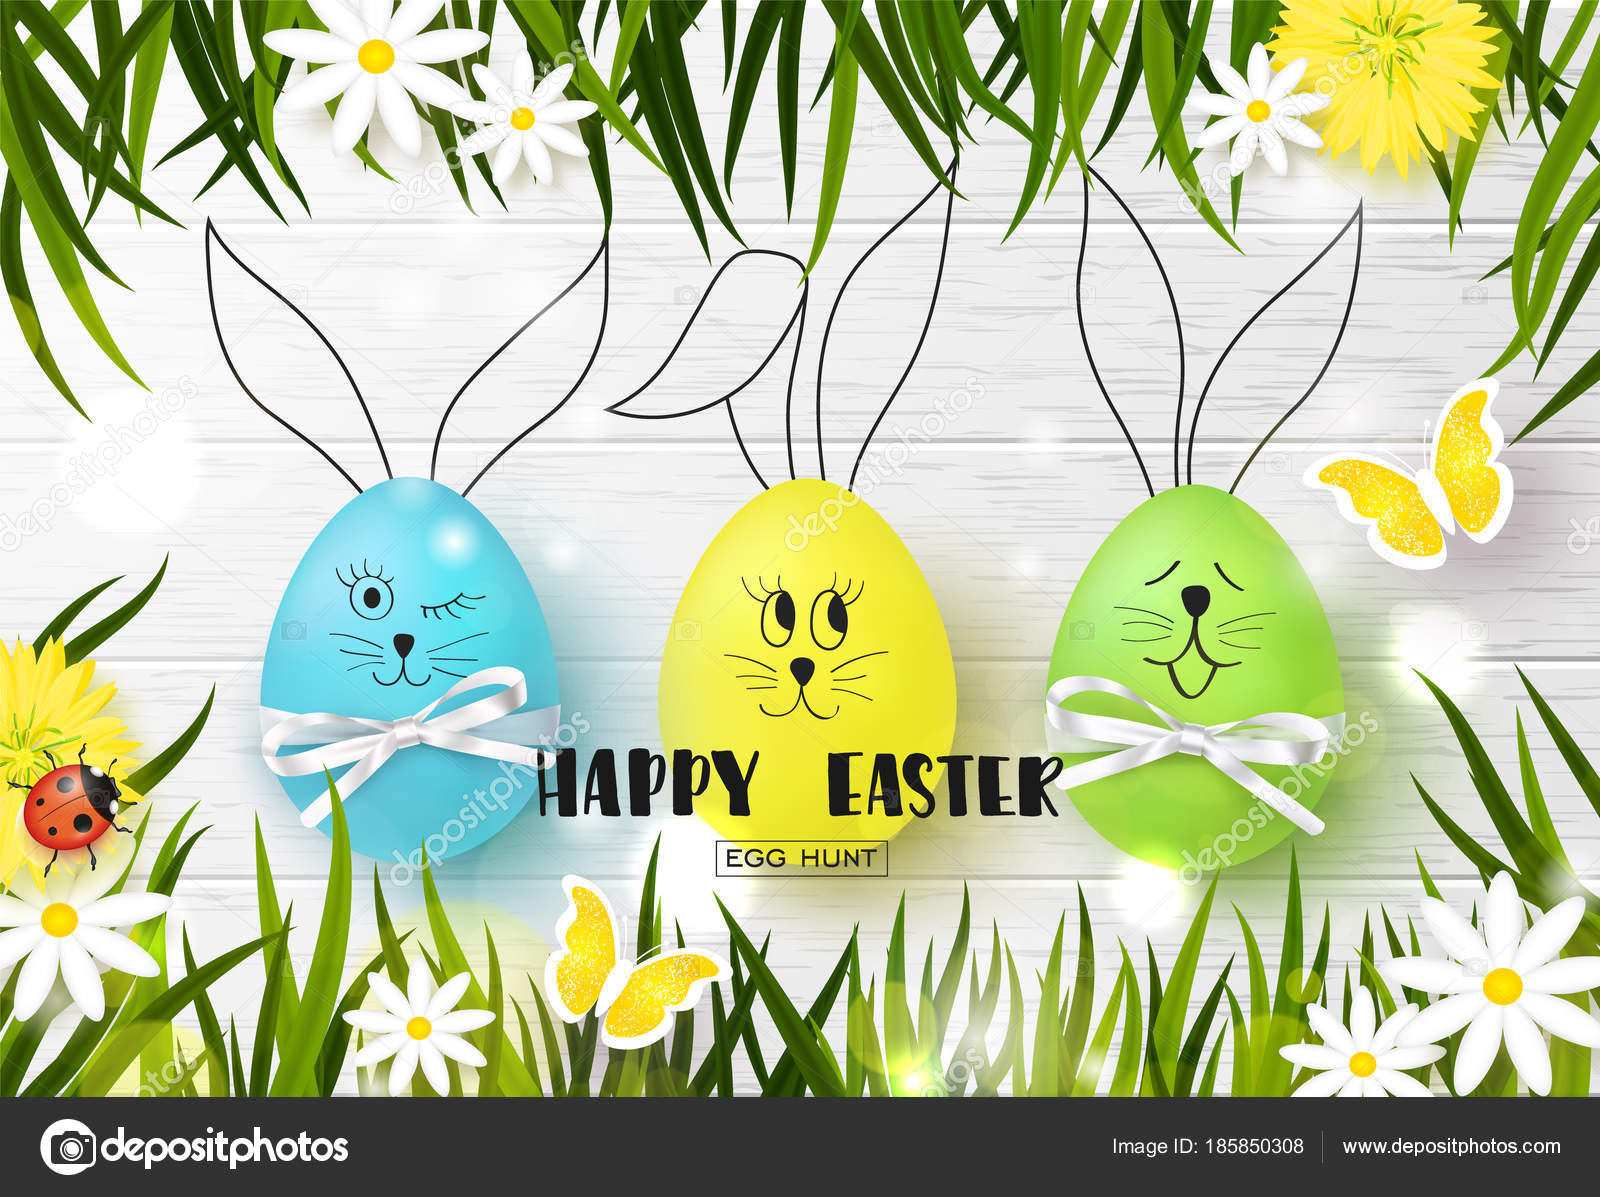 Happy easter background with funny colorful eggs grass flowers happy easter background with funny colorful eggs grass flowers ladybug and butterfly on wooden texture egg hunt vector illustration stopboris Images